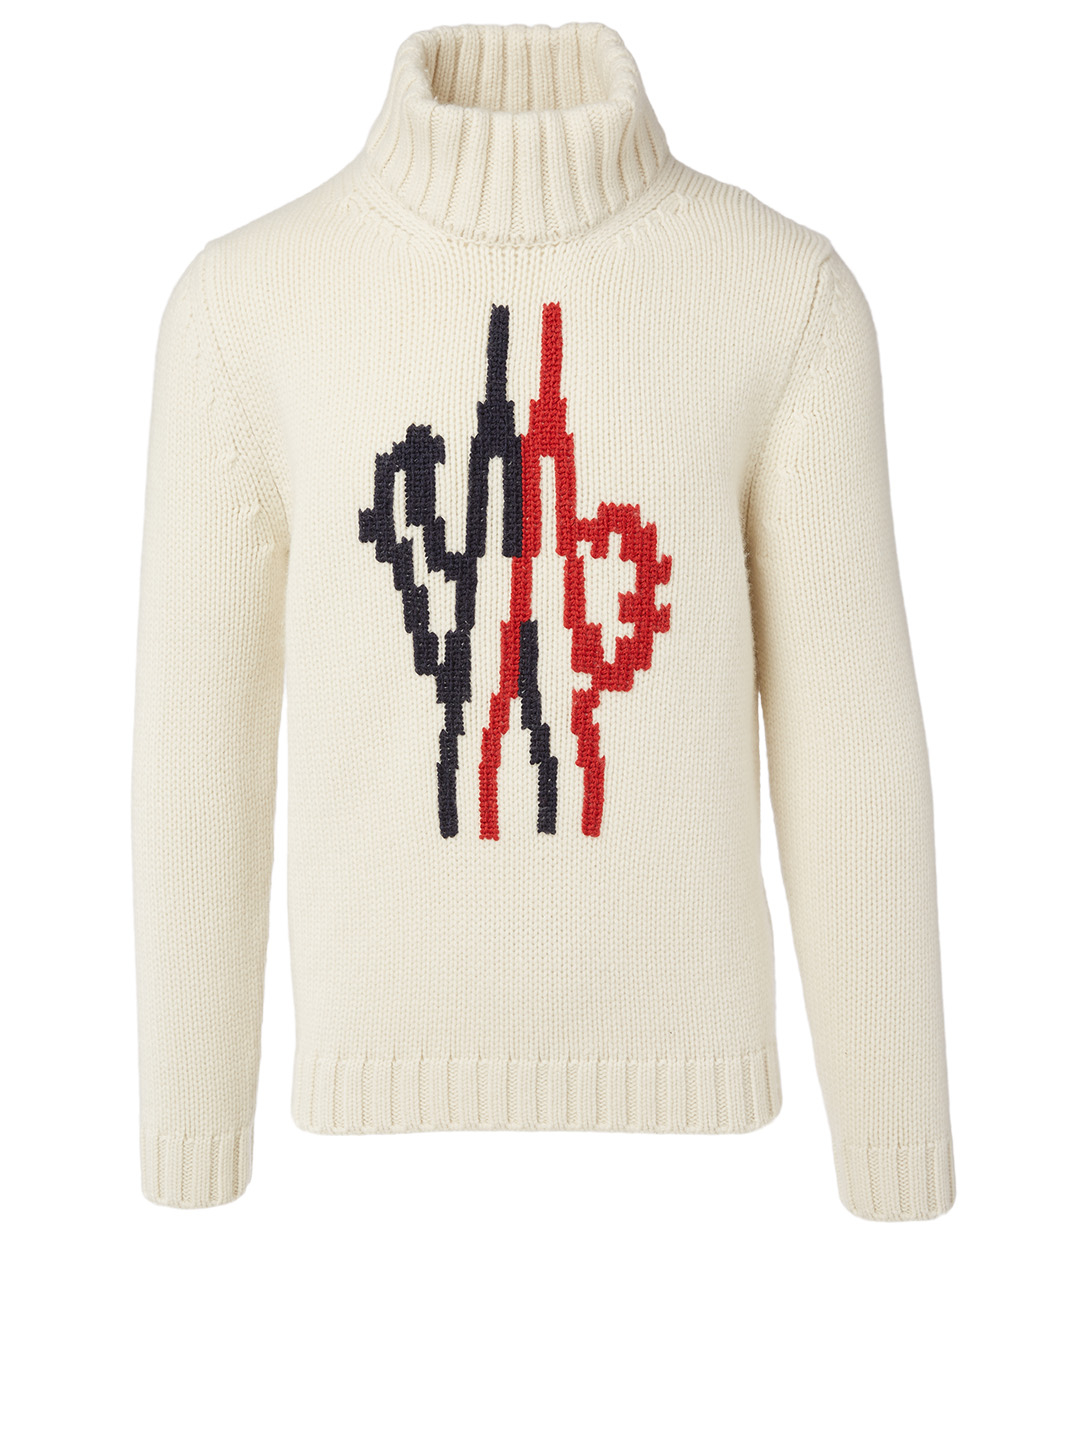 MONCLER GENIUS 2 Moncler 1952 + Valextra Wool Turtleneck Sweater Men's White